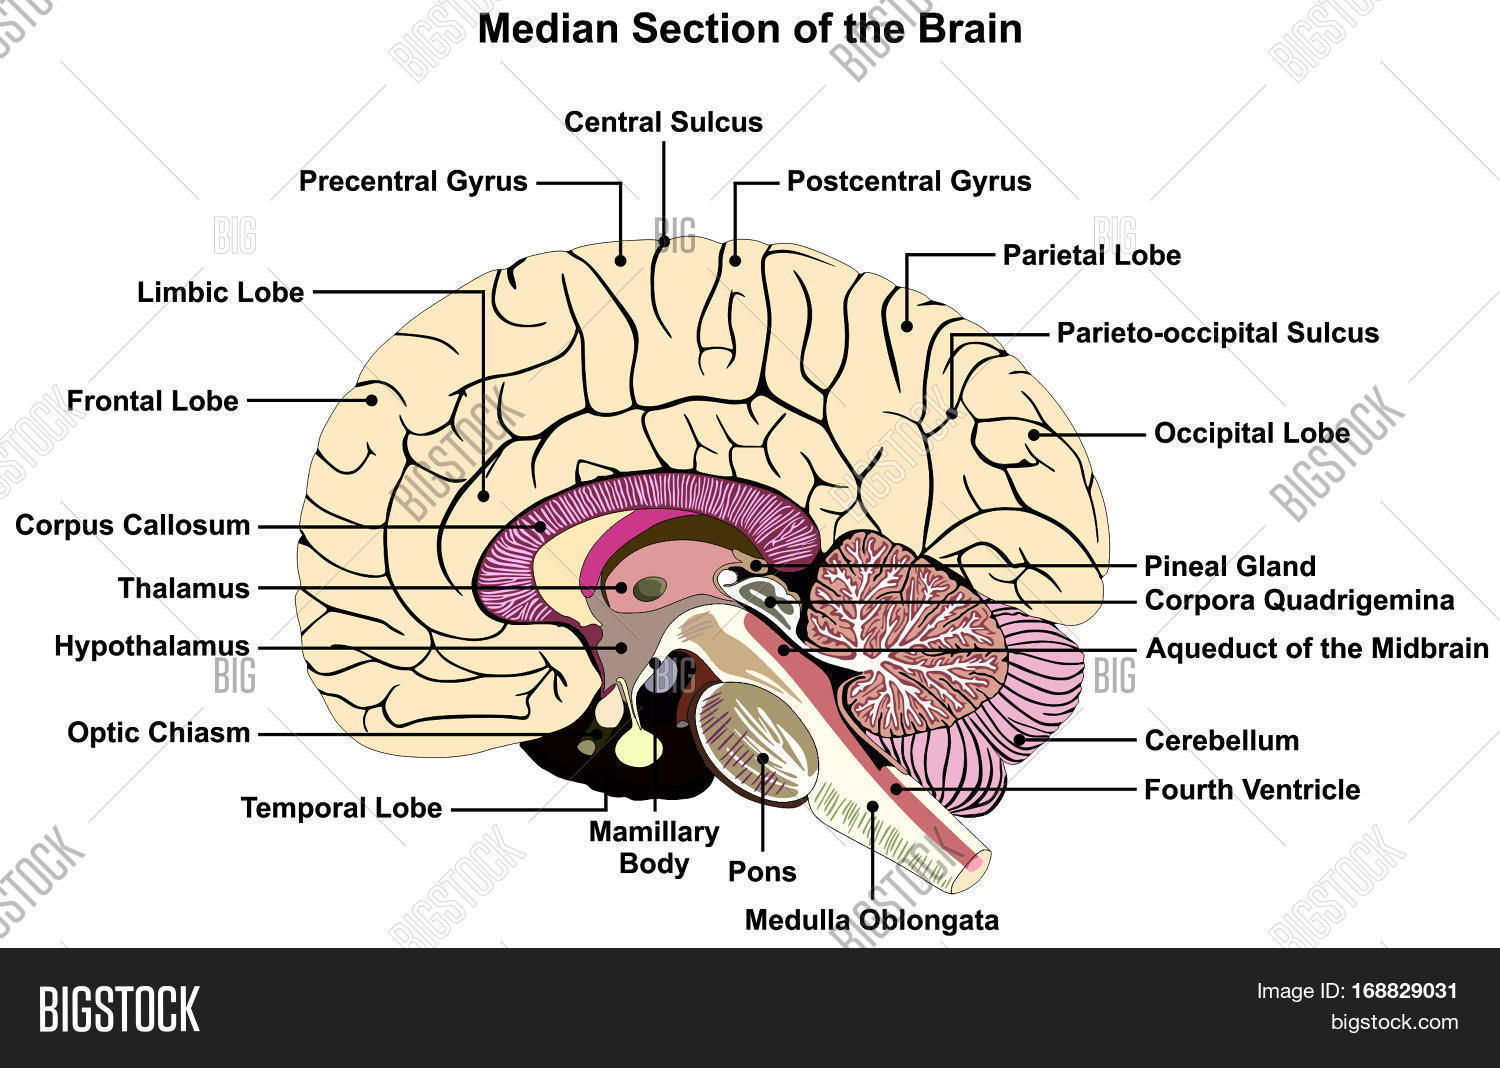 Median Section Human Brain Image Amp Photo